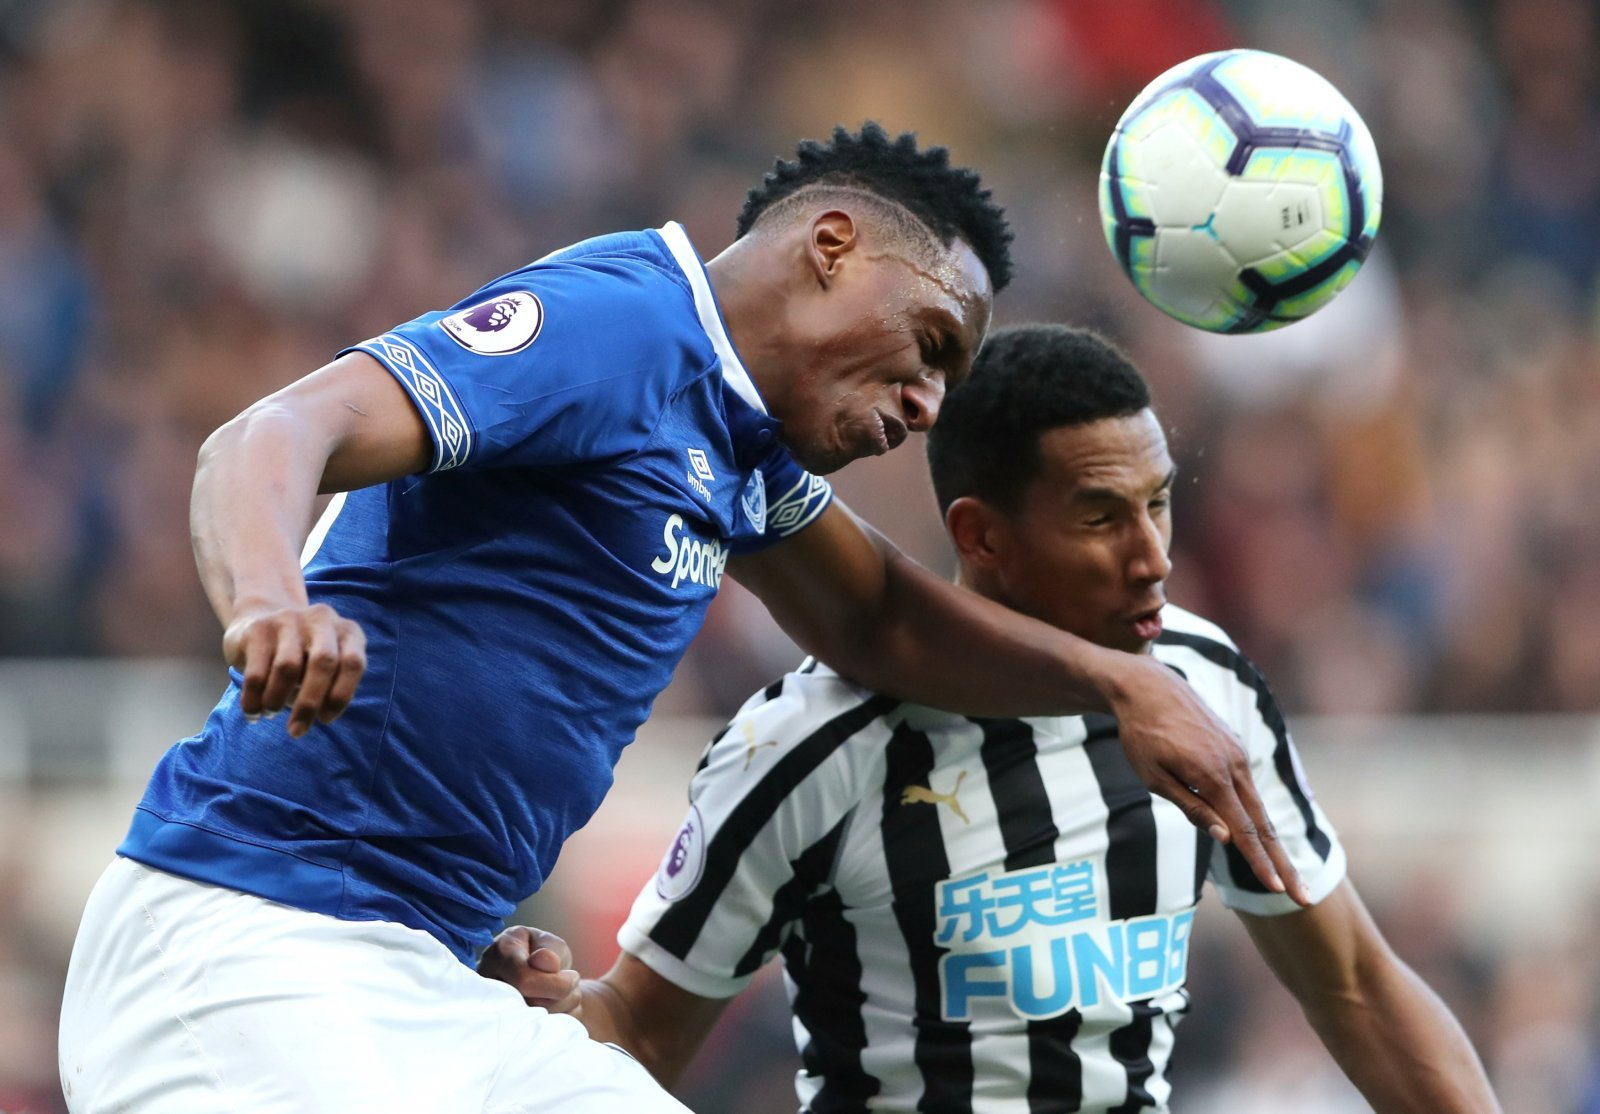 Everton: Yerry Mina is now crucial for end of season run-in